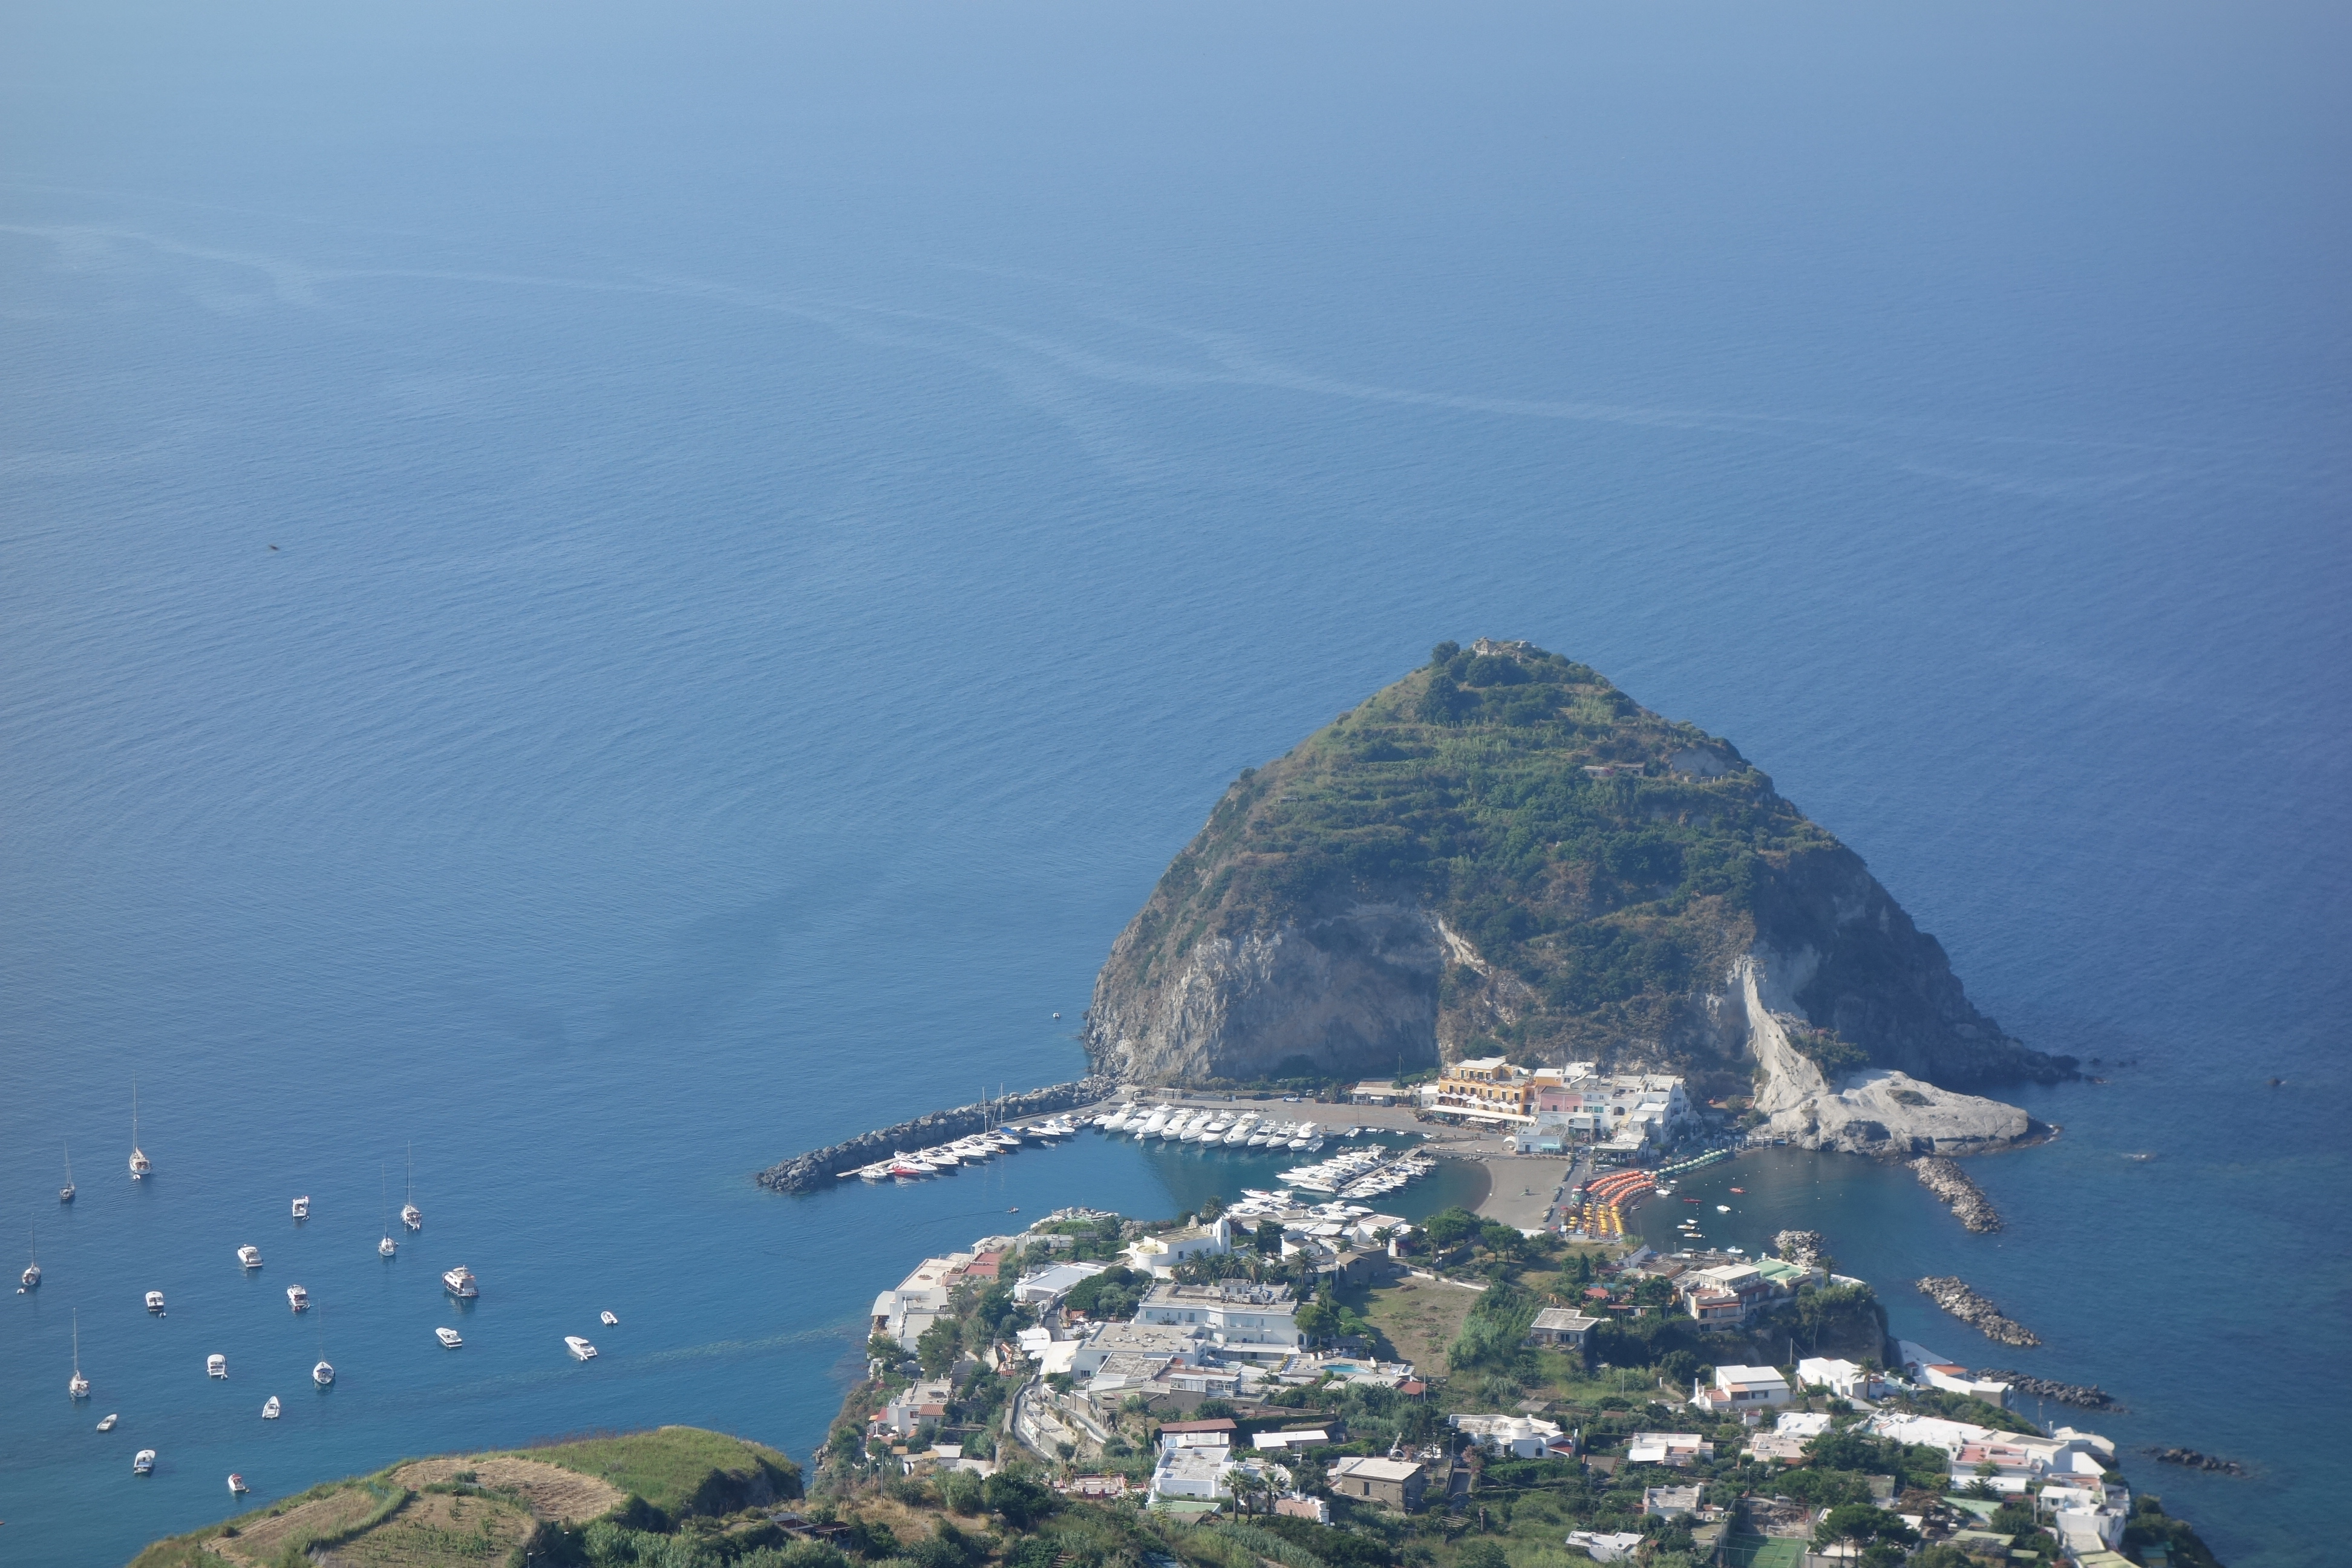 Visiter Ischia quand on n'a pas d'argent